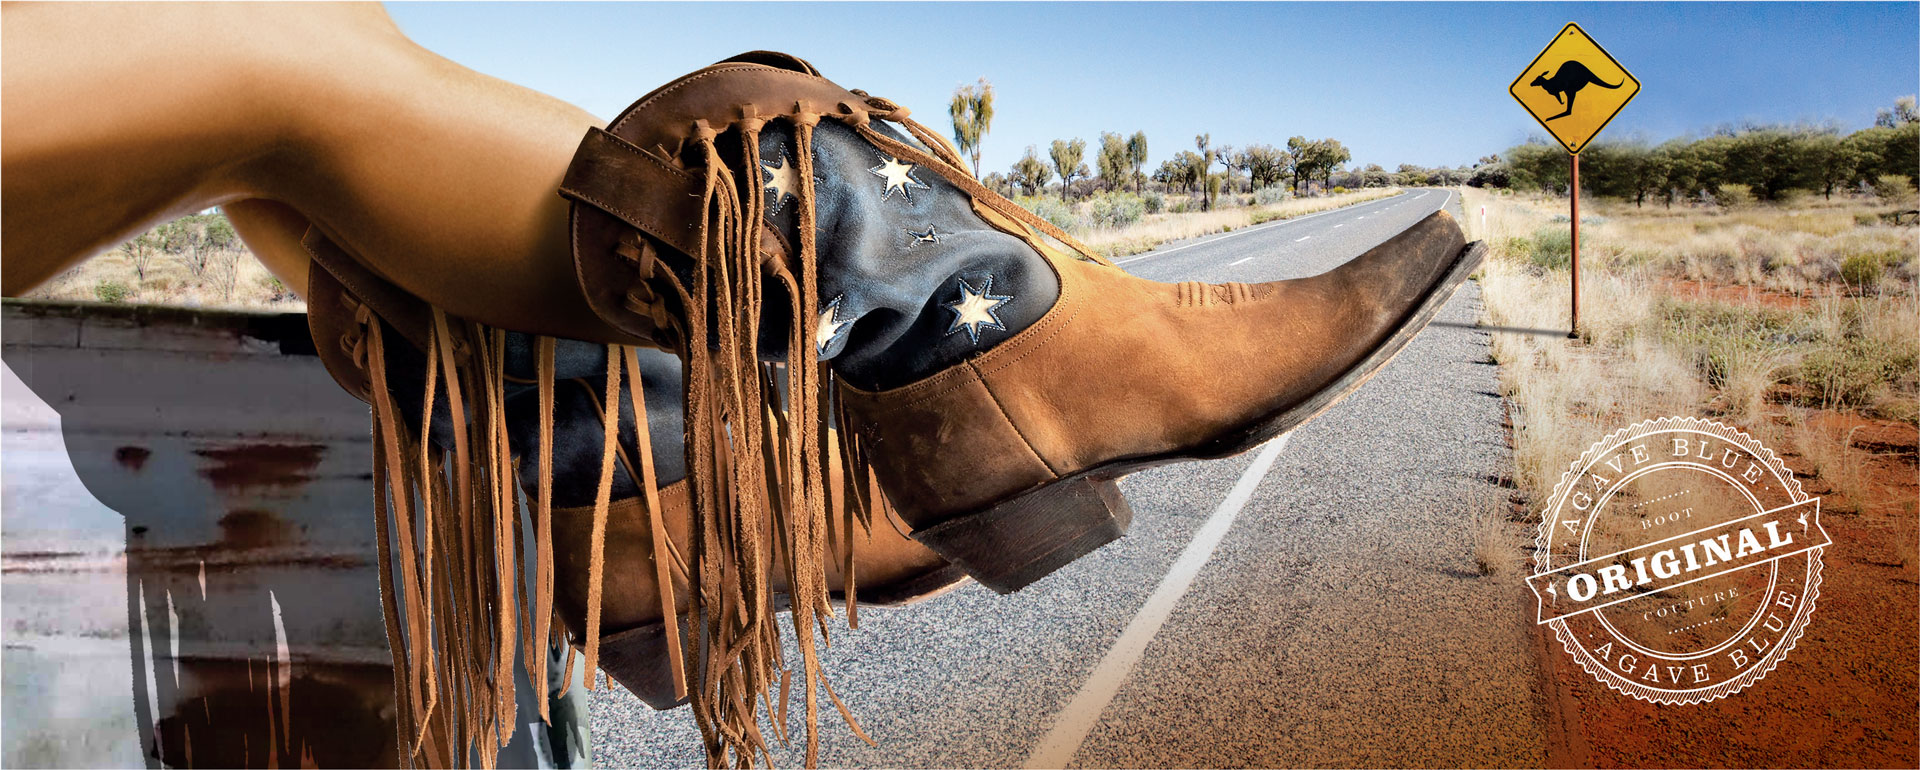 Southern Pride boots by Agave Blue Promo